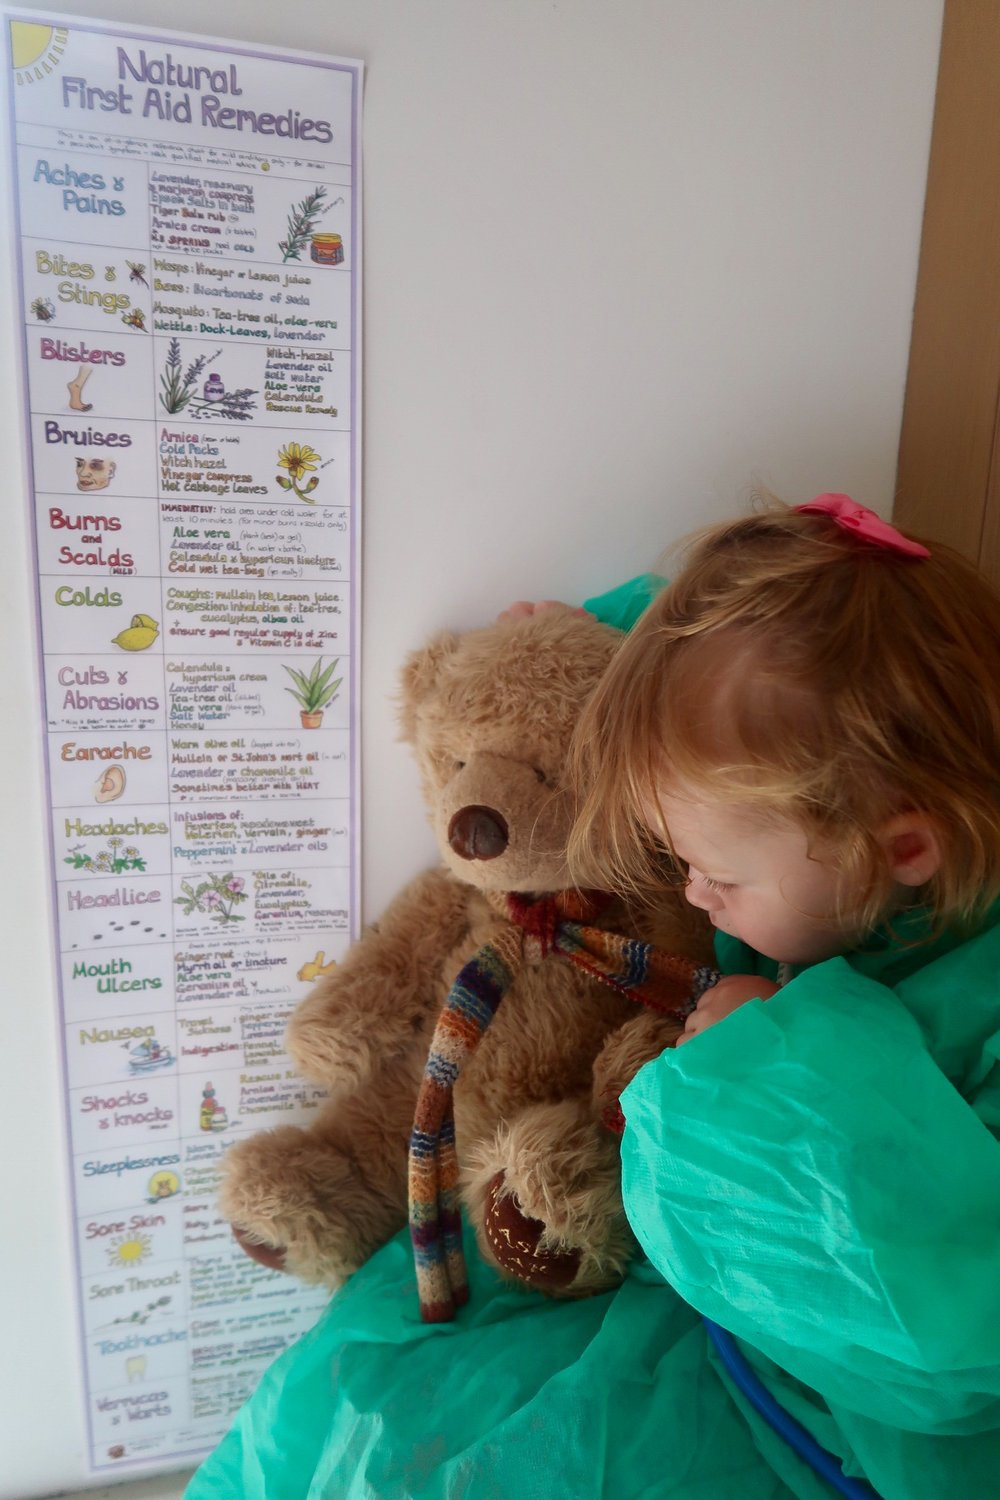 Scrubs and stethoscope ready to administer teddy bear first aid as per our Natural First Aid Remedies chart...!